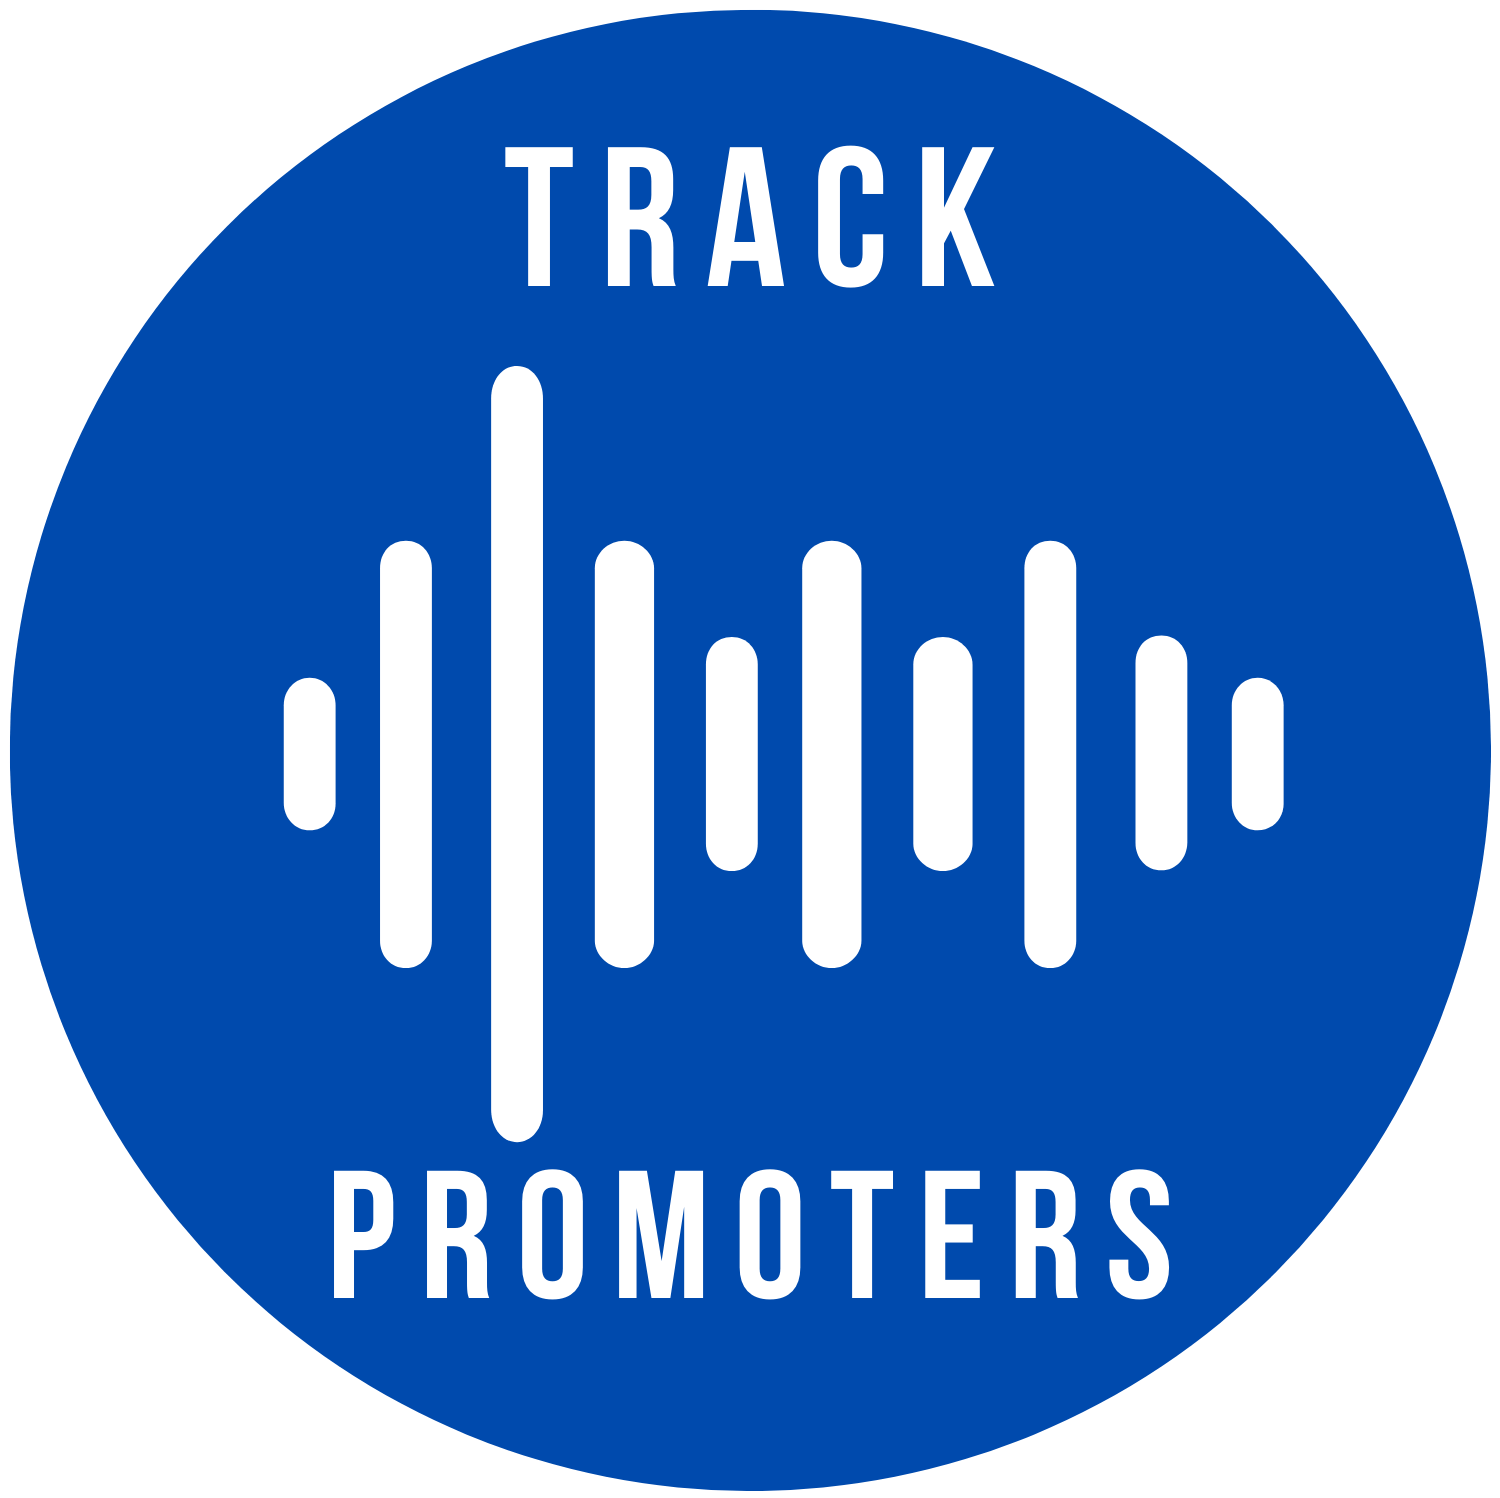 Track Promoters